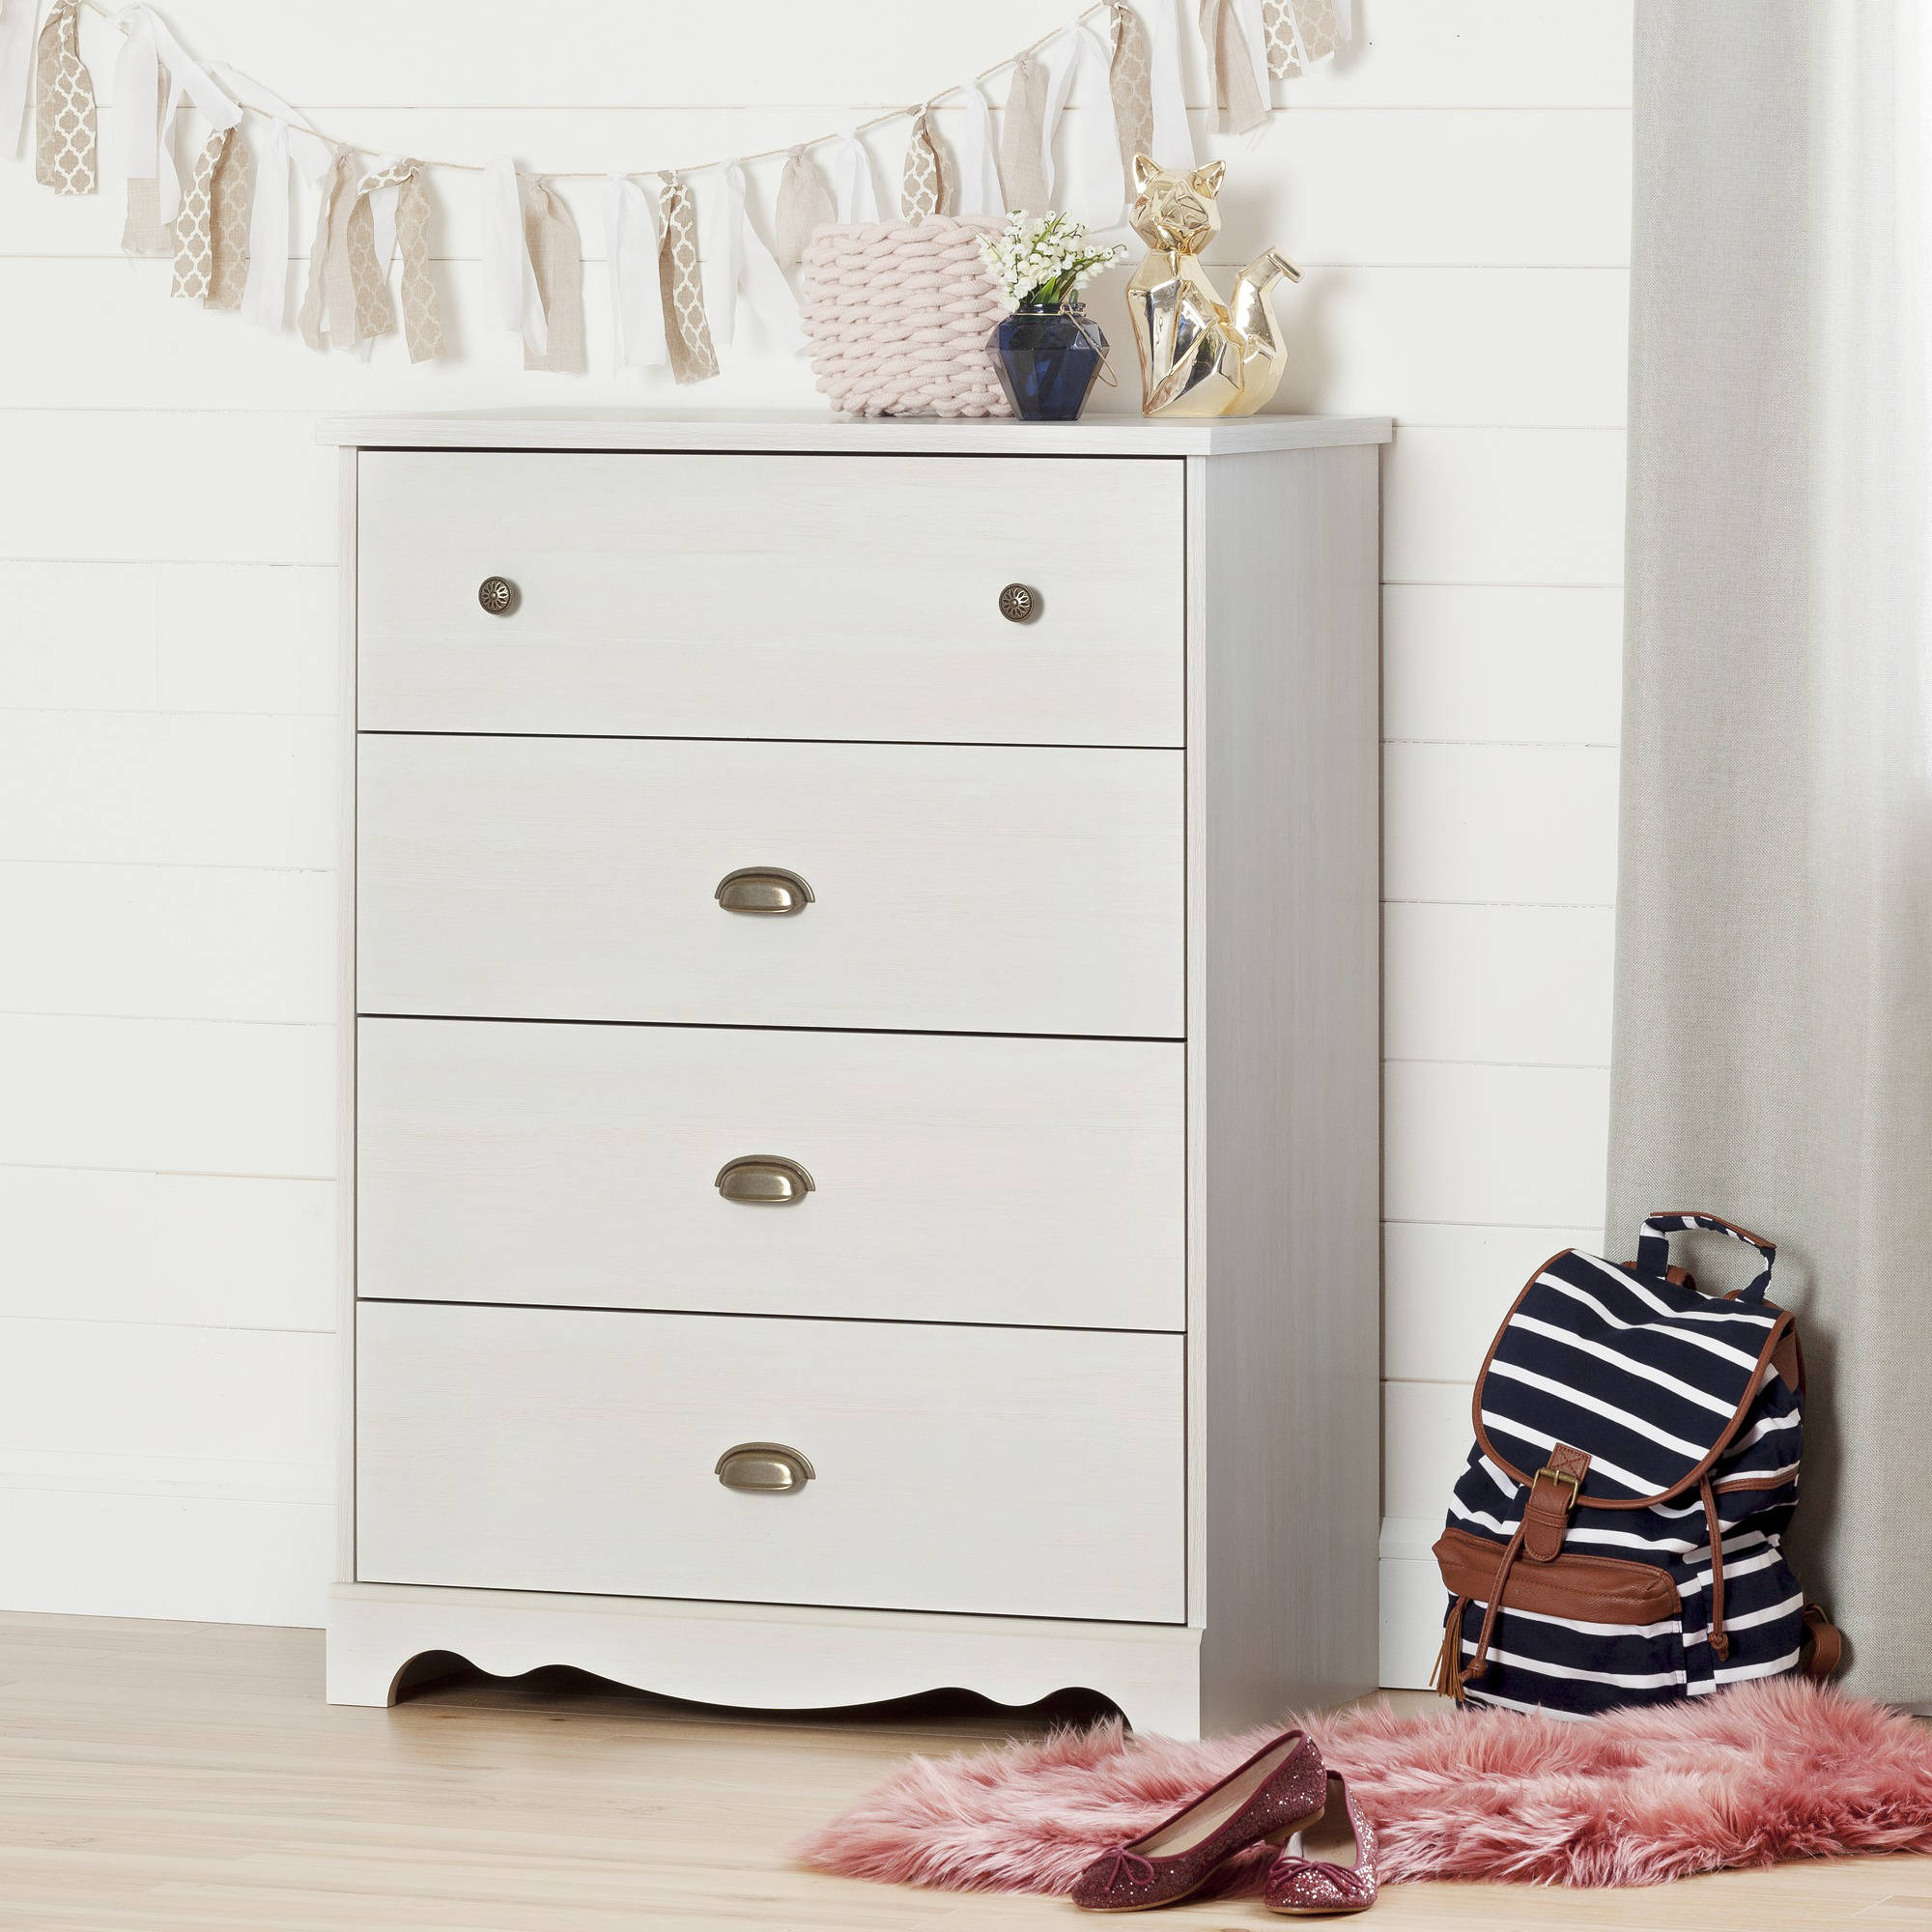 South Shore Caravell 4-Drawer Chest, White Wash by South Shore